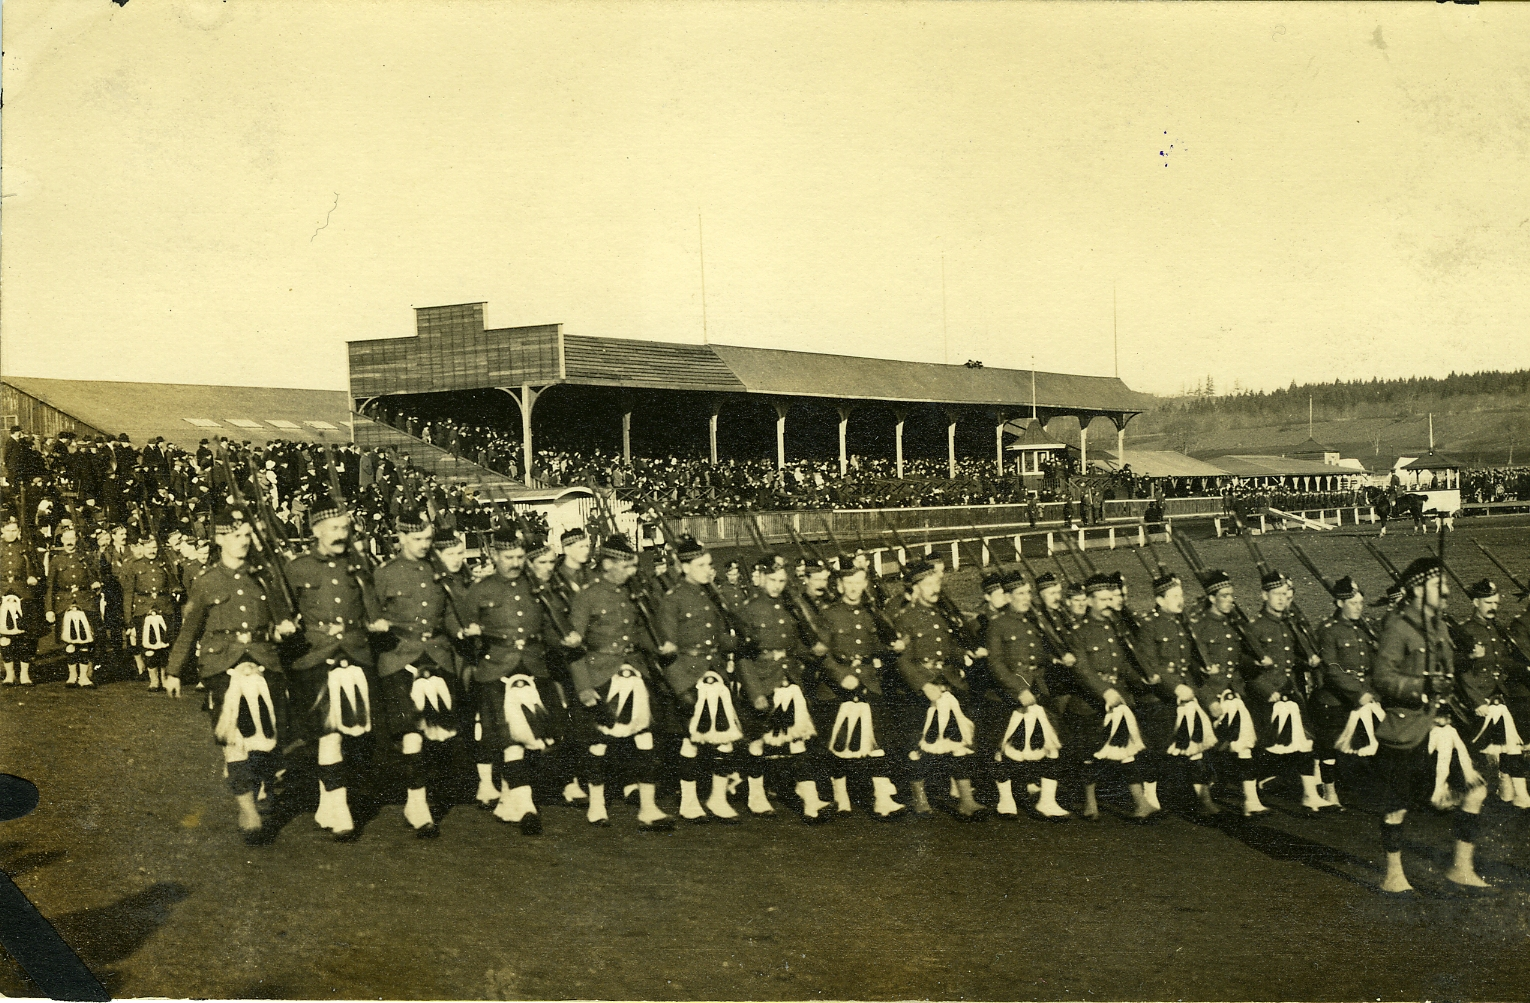 The Highlanders on Parade